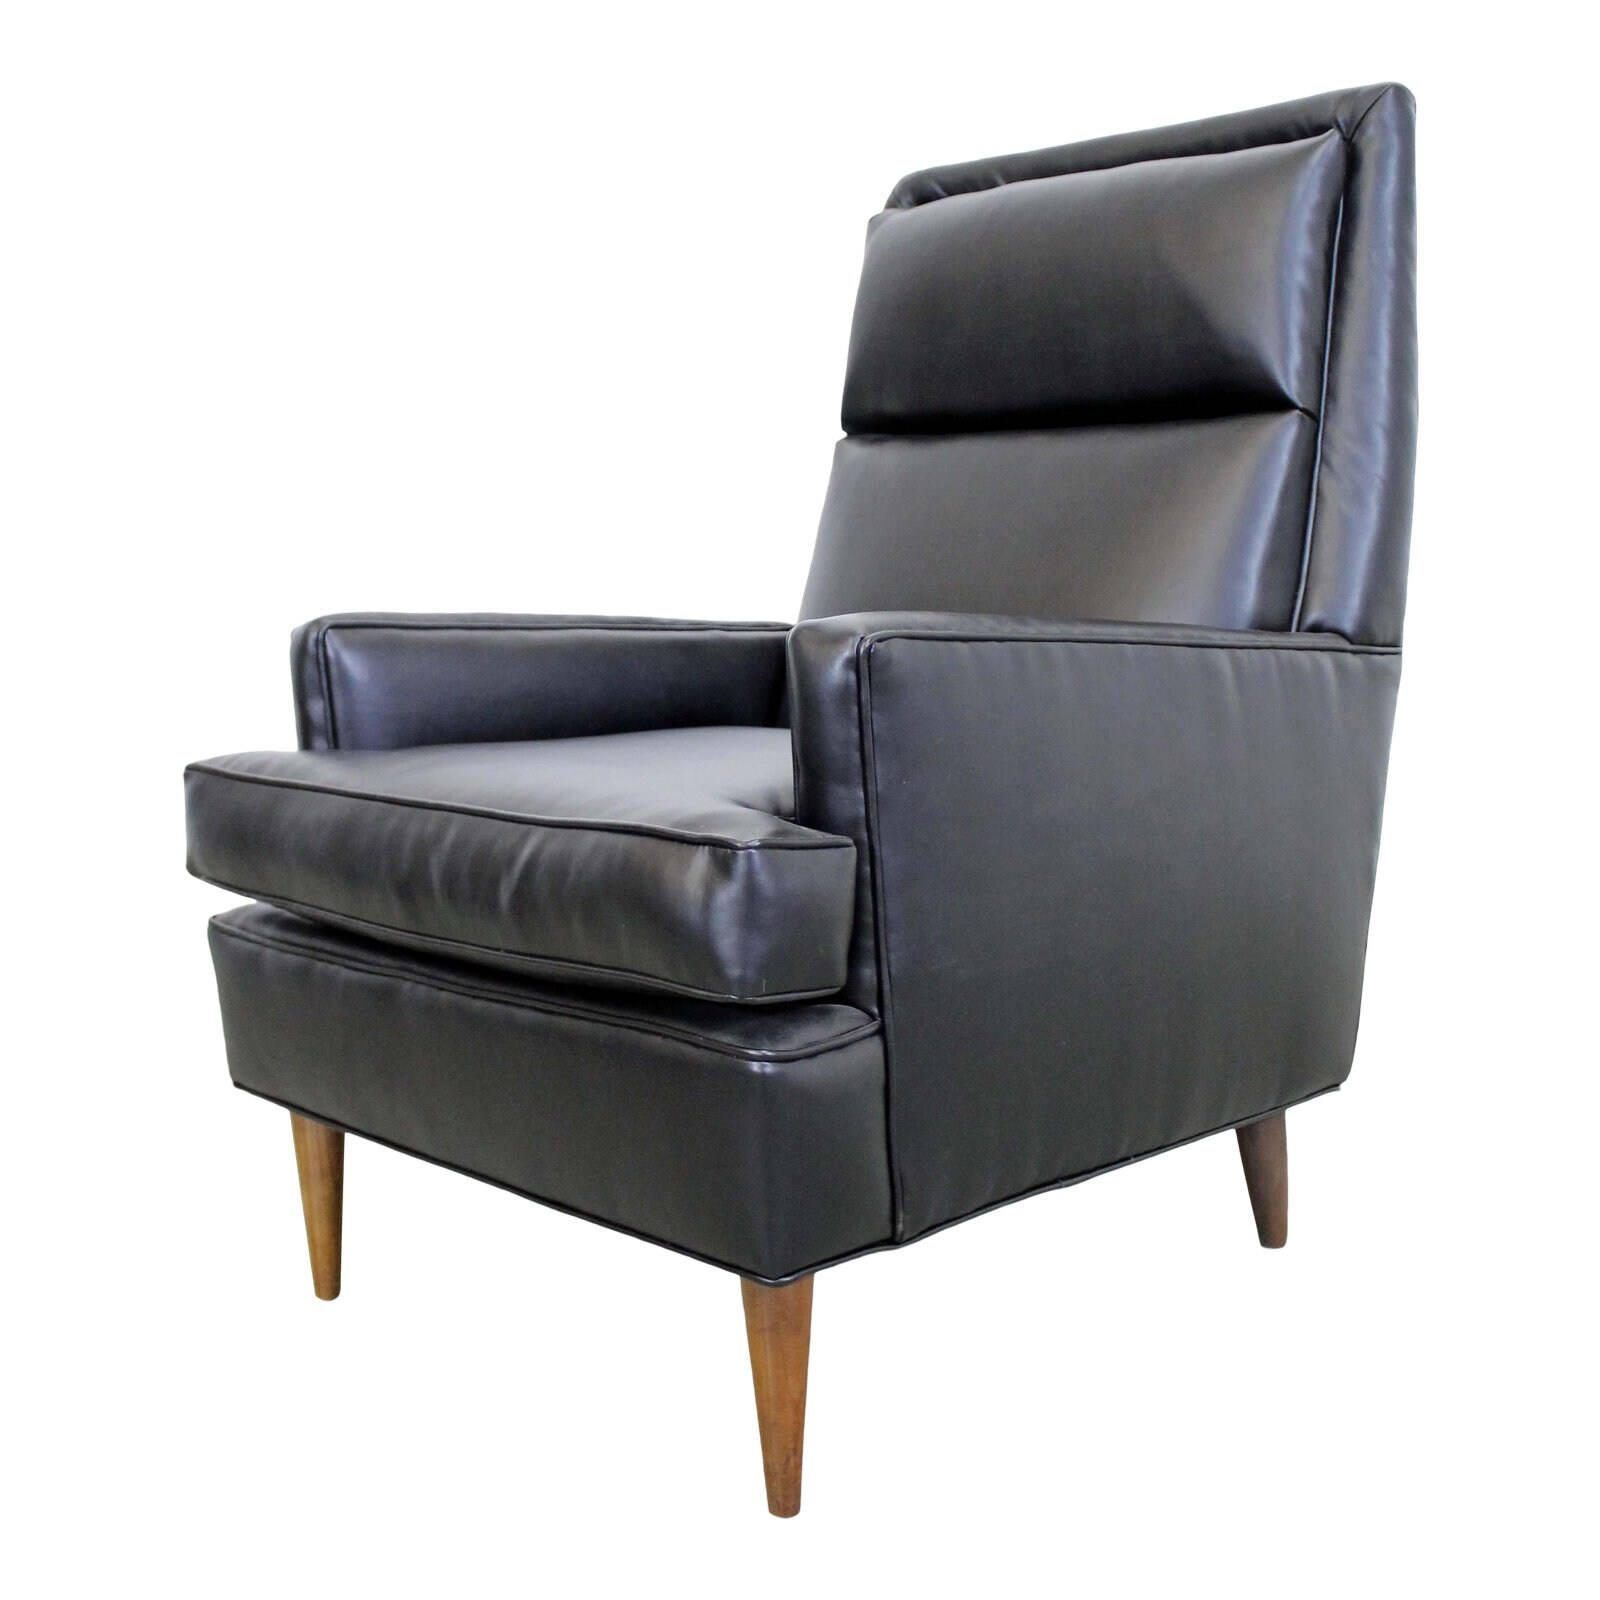 Selig Chair Selig Lounge Chair Mid Century Modern Danish Modern Arm Chair